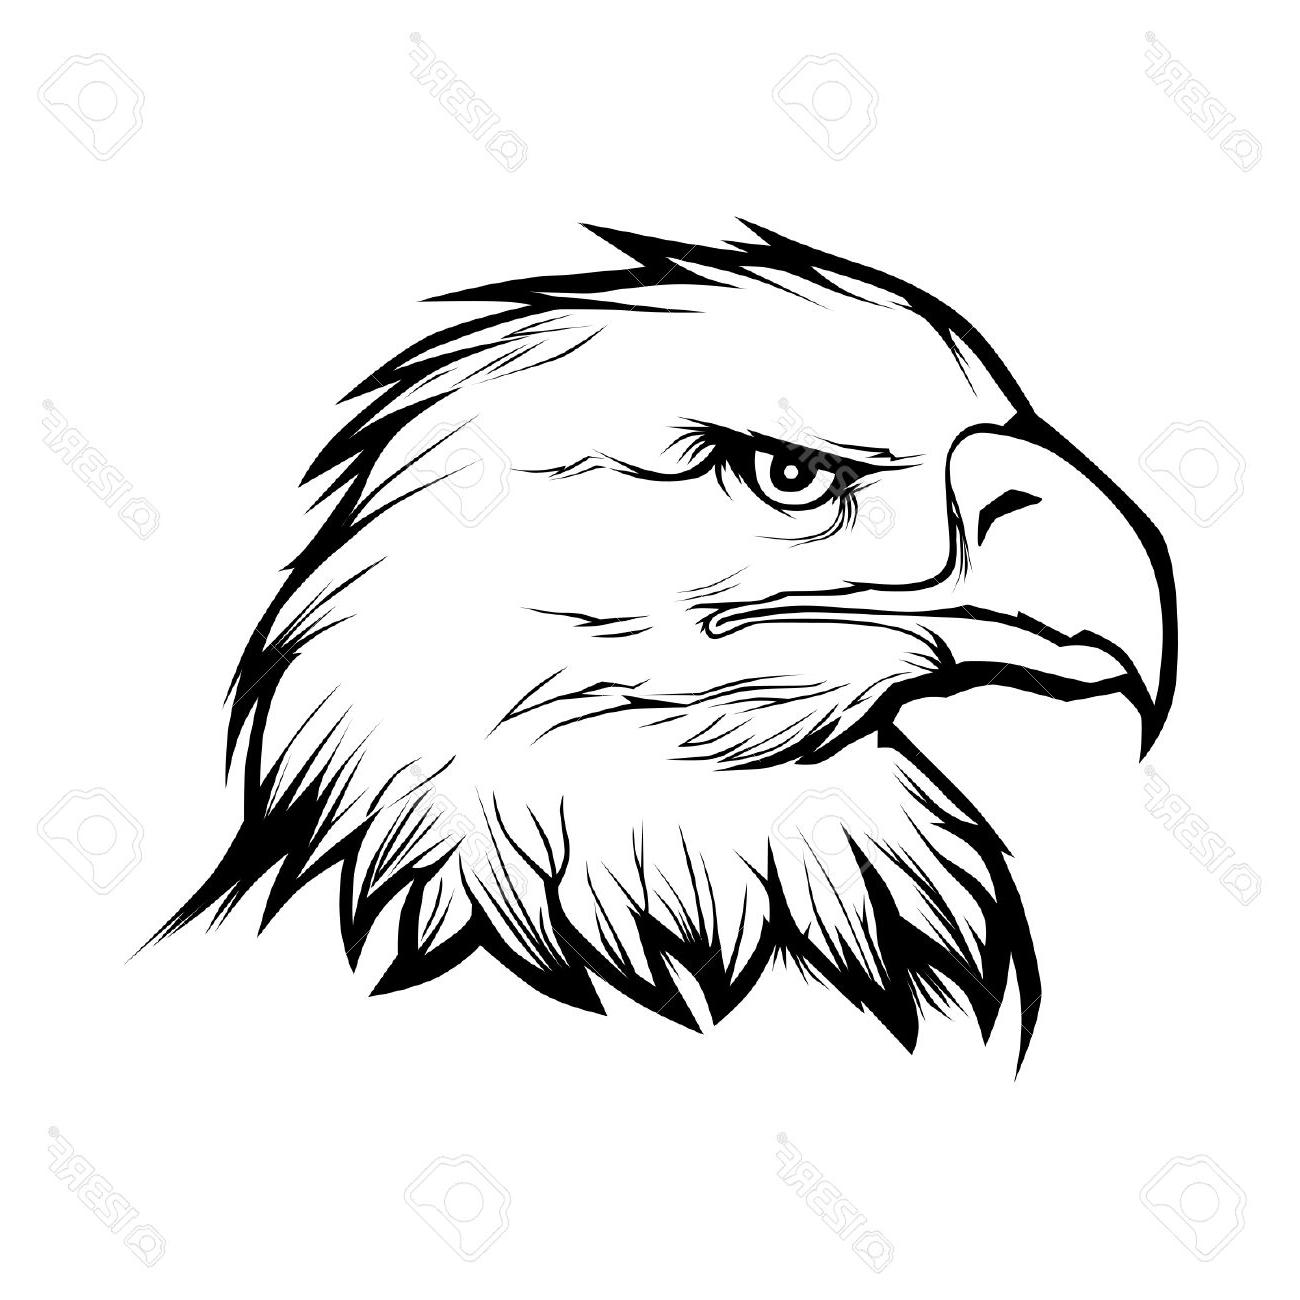 Black And White Eagle Drawing At Getdrawings Free For Personal